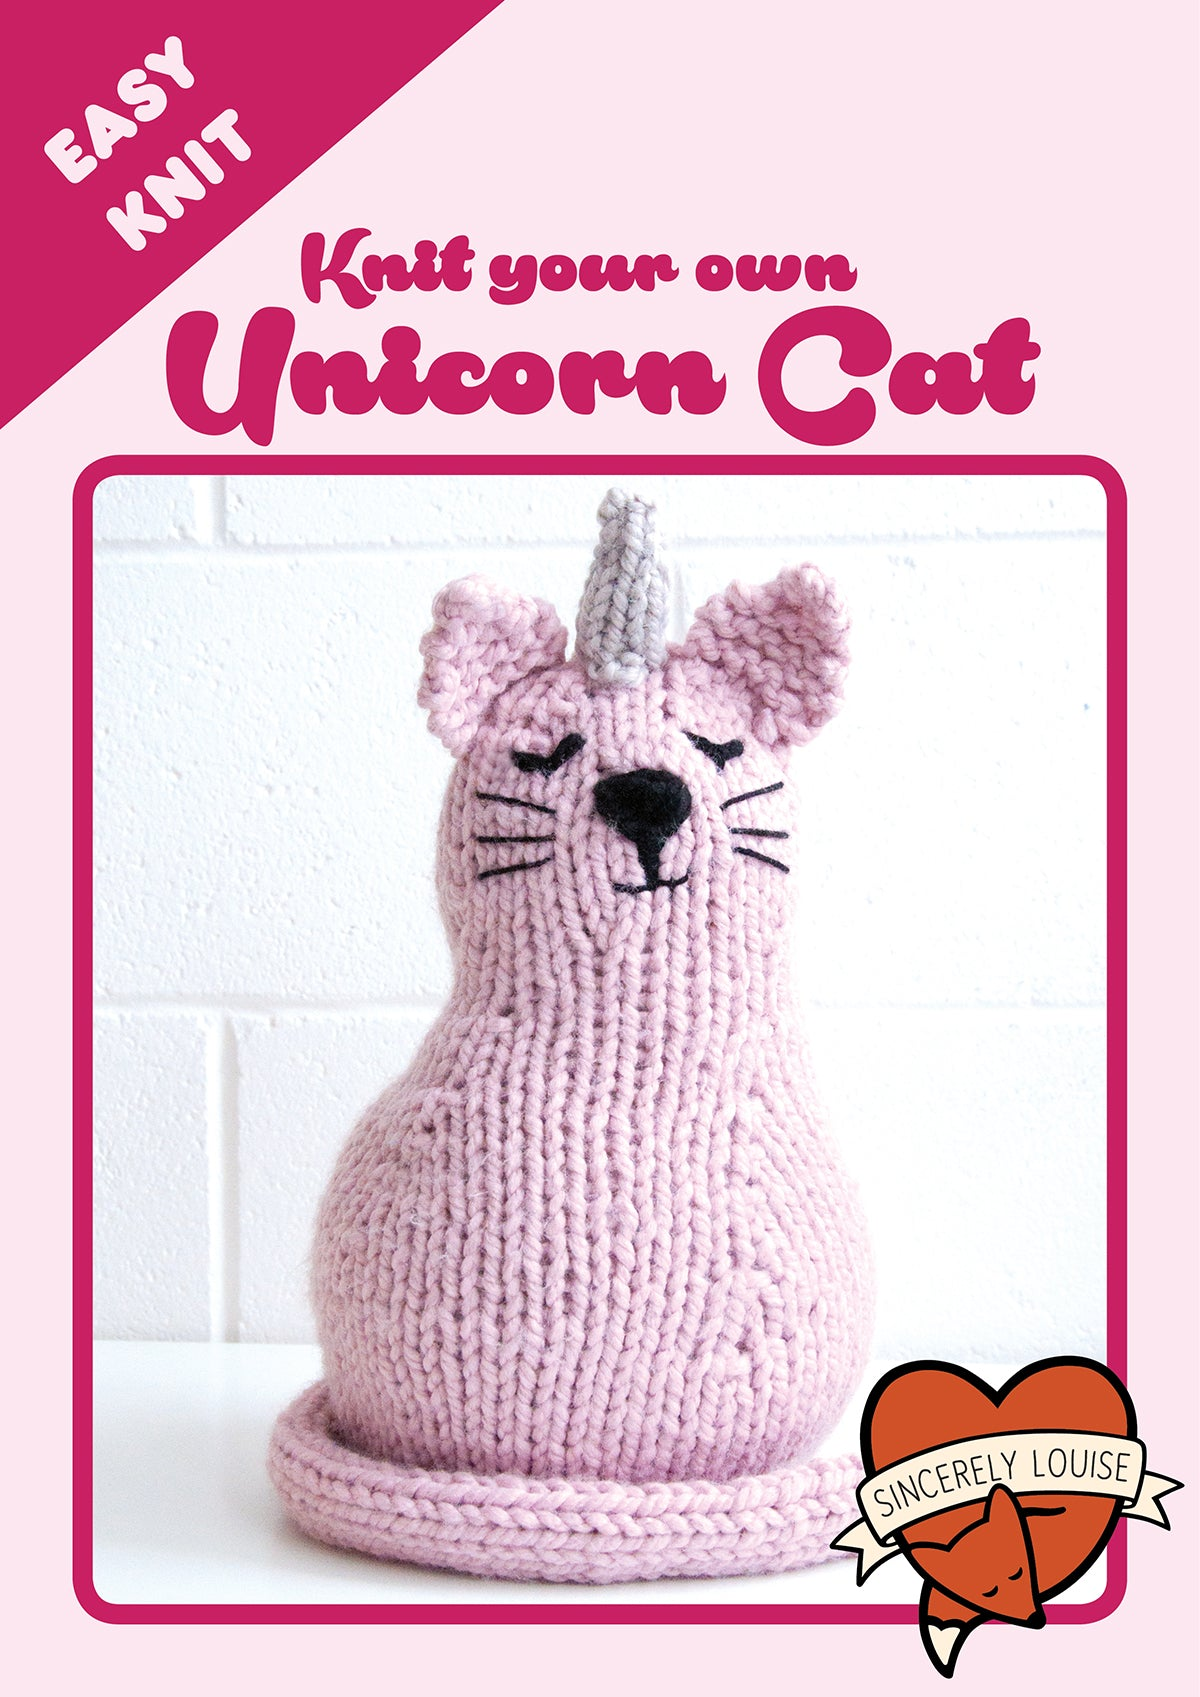 Unicorn Cat Knitting Kit - Uni-cat